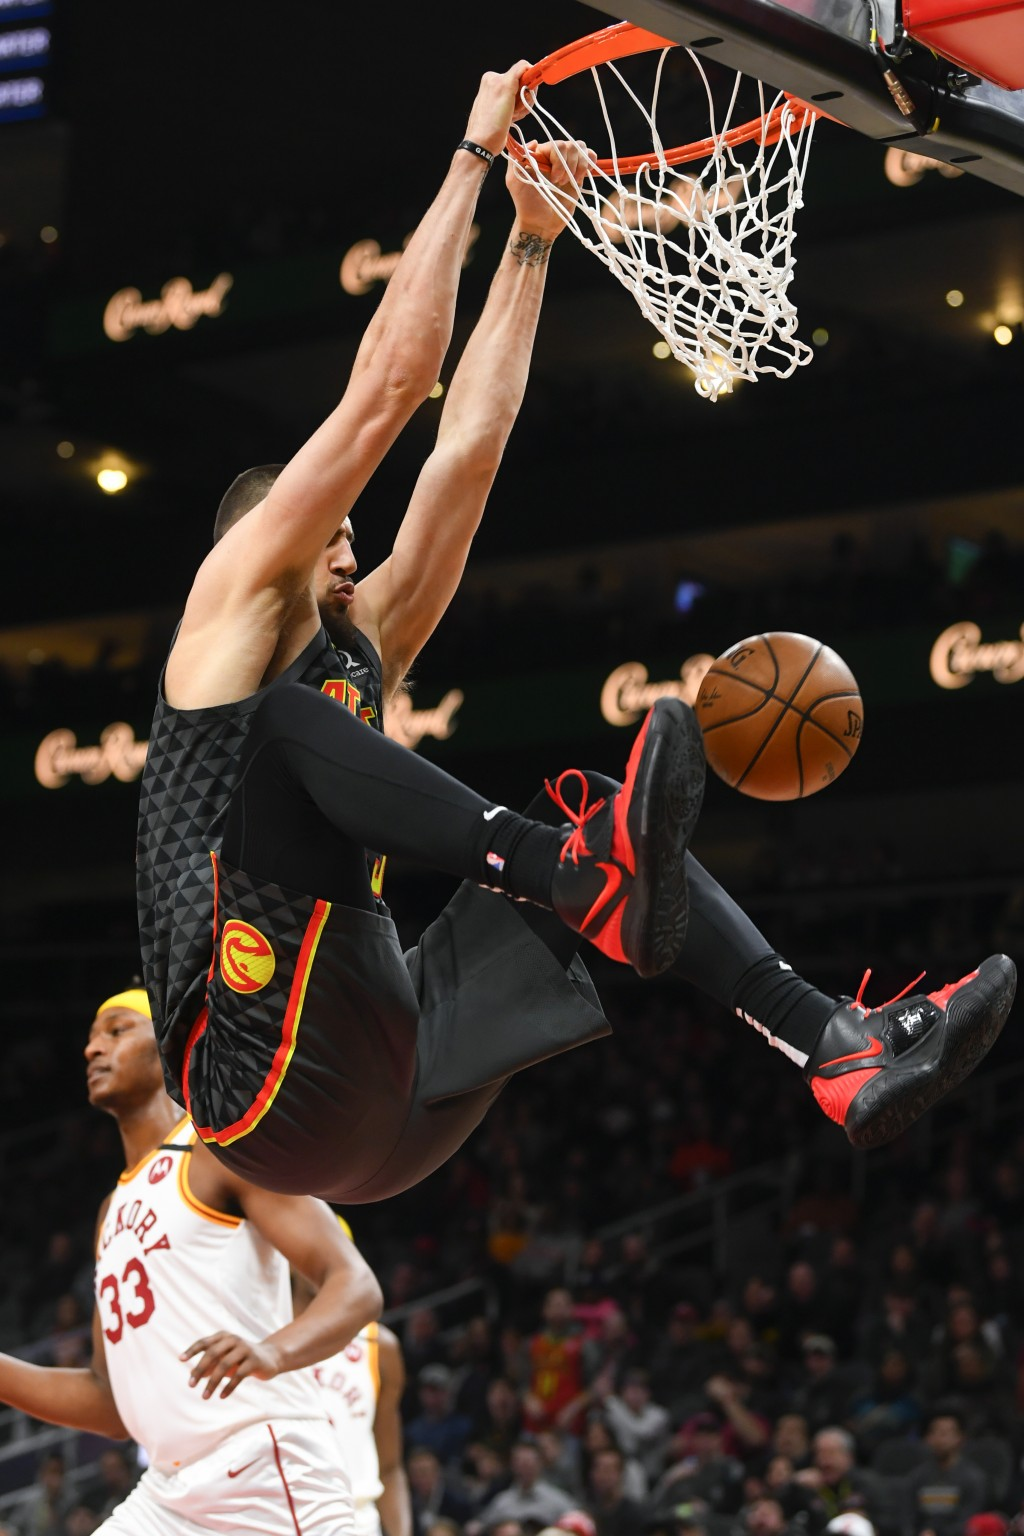 Atlanta Hawks center Alex Len dunks during the first half of an NBA basketball game against the Indiana Pacers, Saturday, Jan. 4, 2020, in Atlanta. (A...